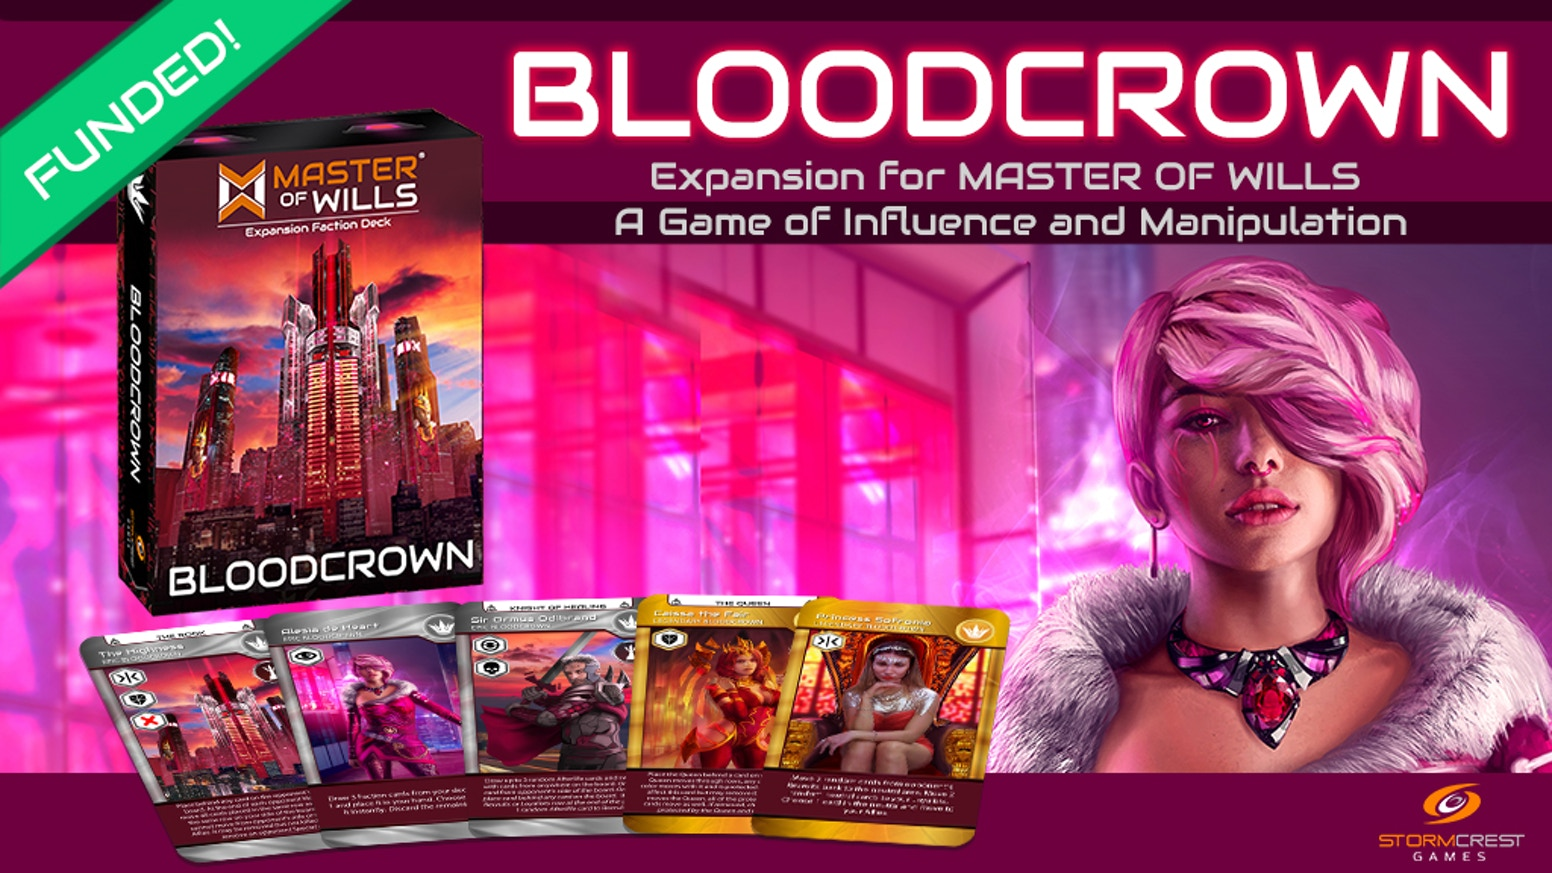 A new cyberpunk, medieval expansion from Master of Wills, a game of influence and manipulation.